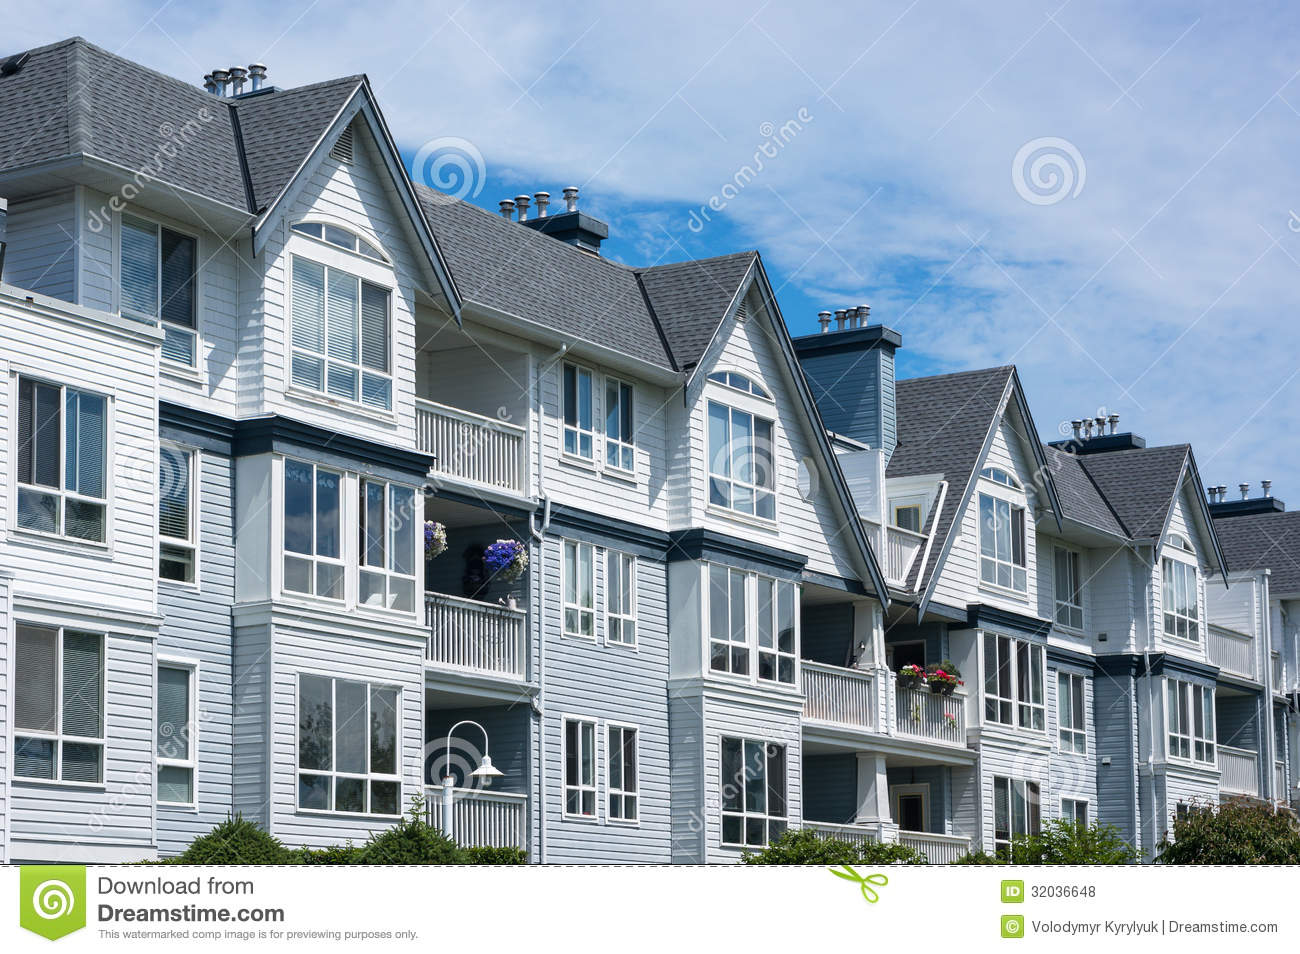 Brilliant Apartment Building Images Royalty Free Stock Photos R To Design Inspiration